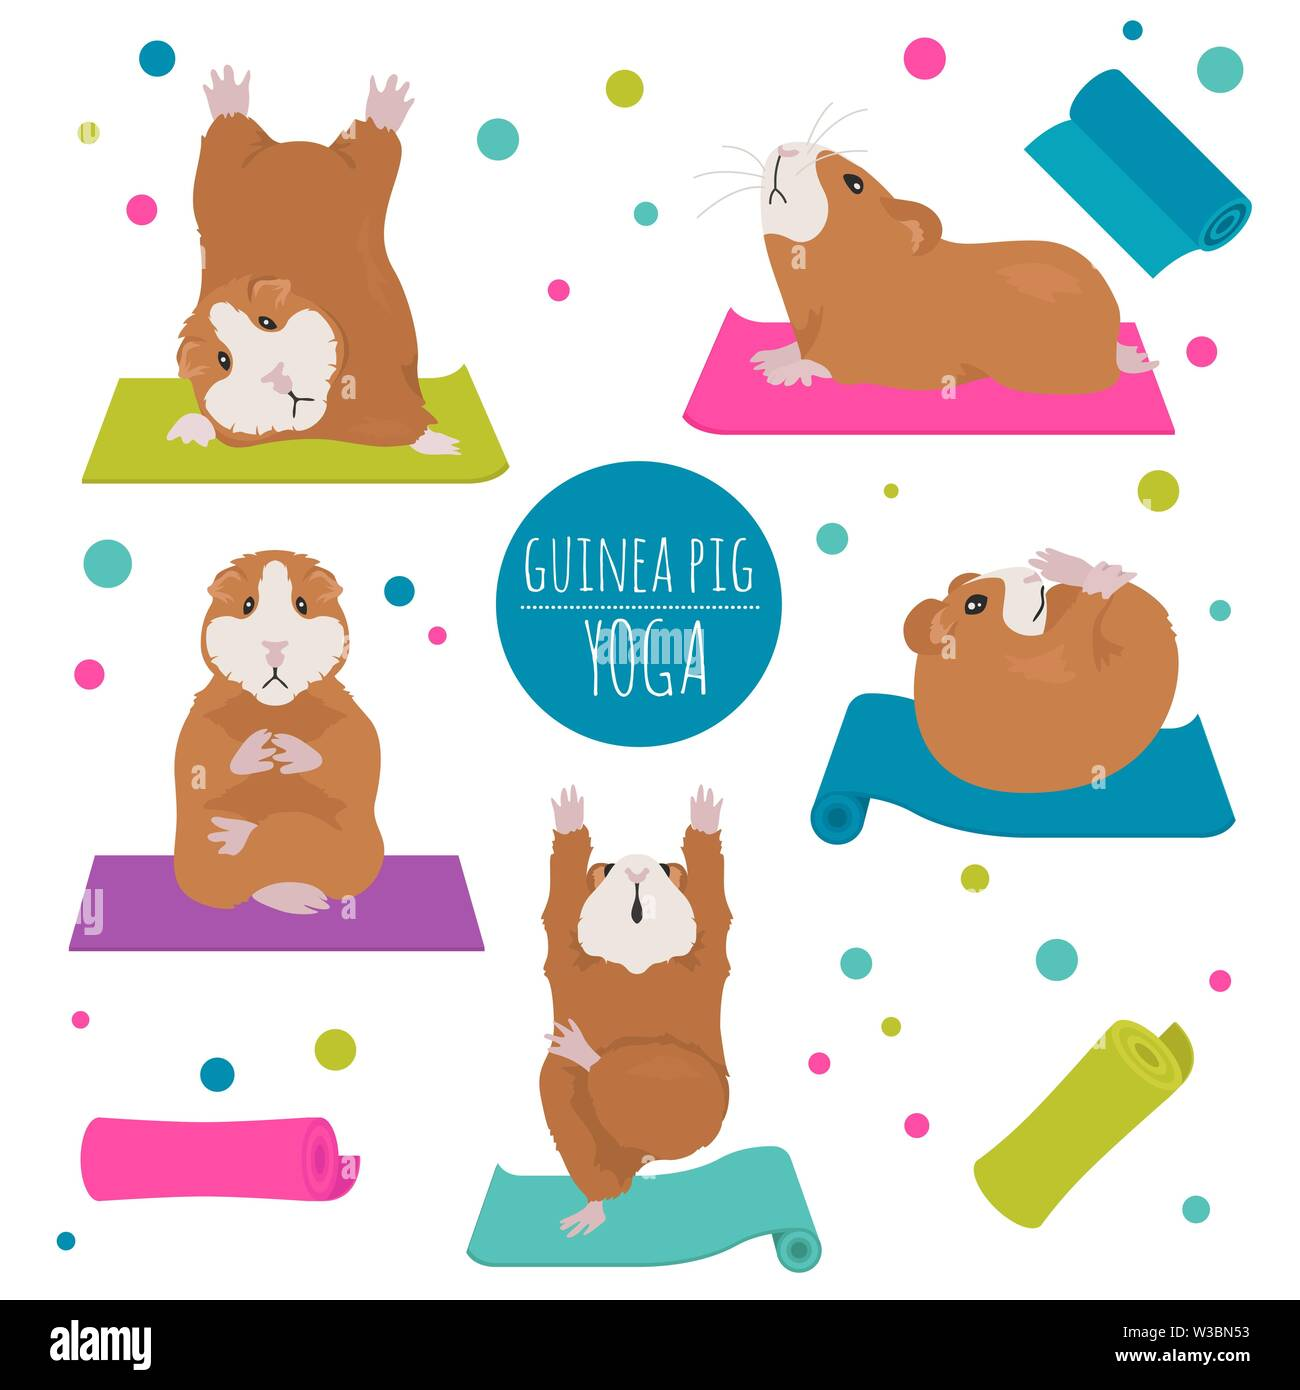 Guinea Pig Yoga Poses And Exercises Cute Cartoon Clipart Set Vector Illustration Stock Vector Image Art Alamy